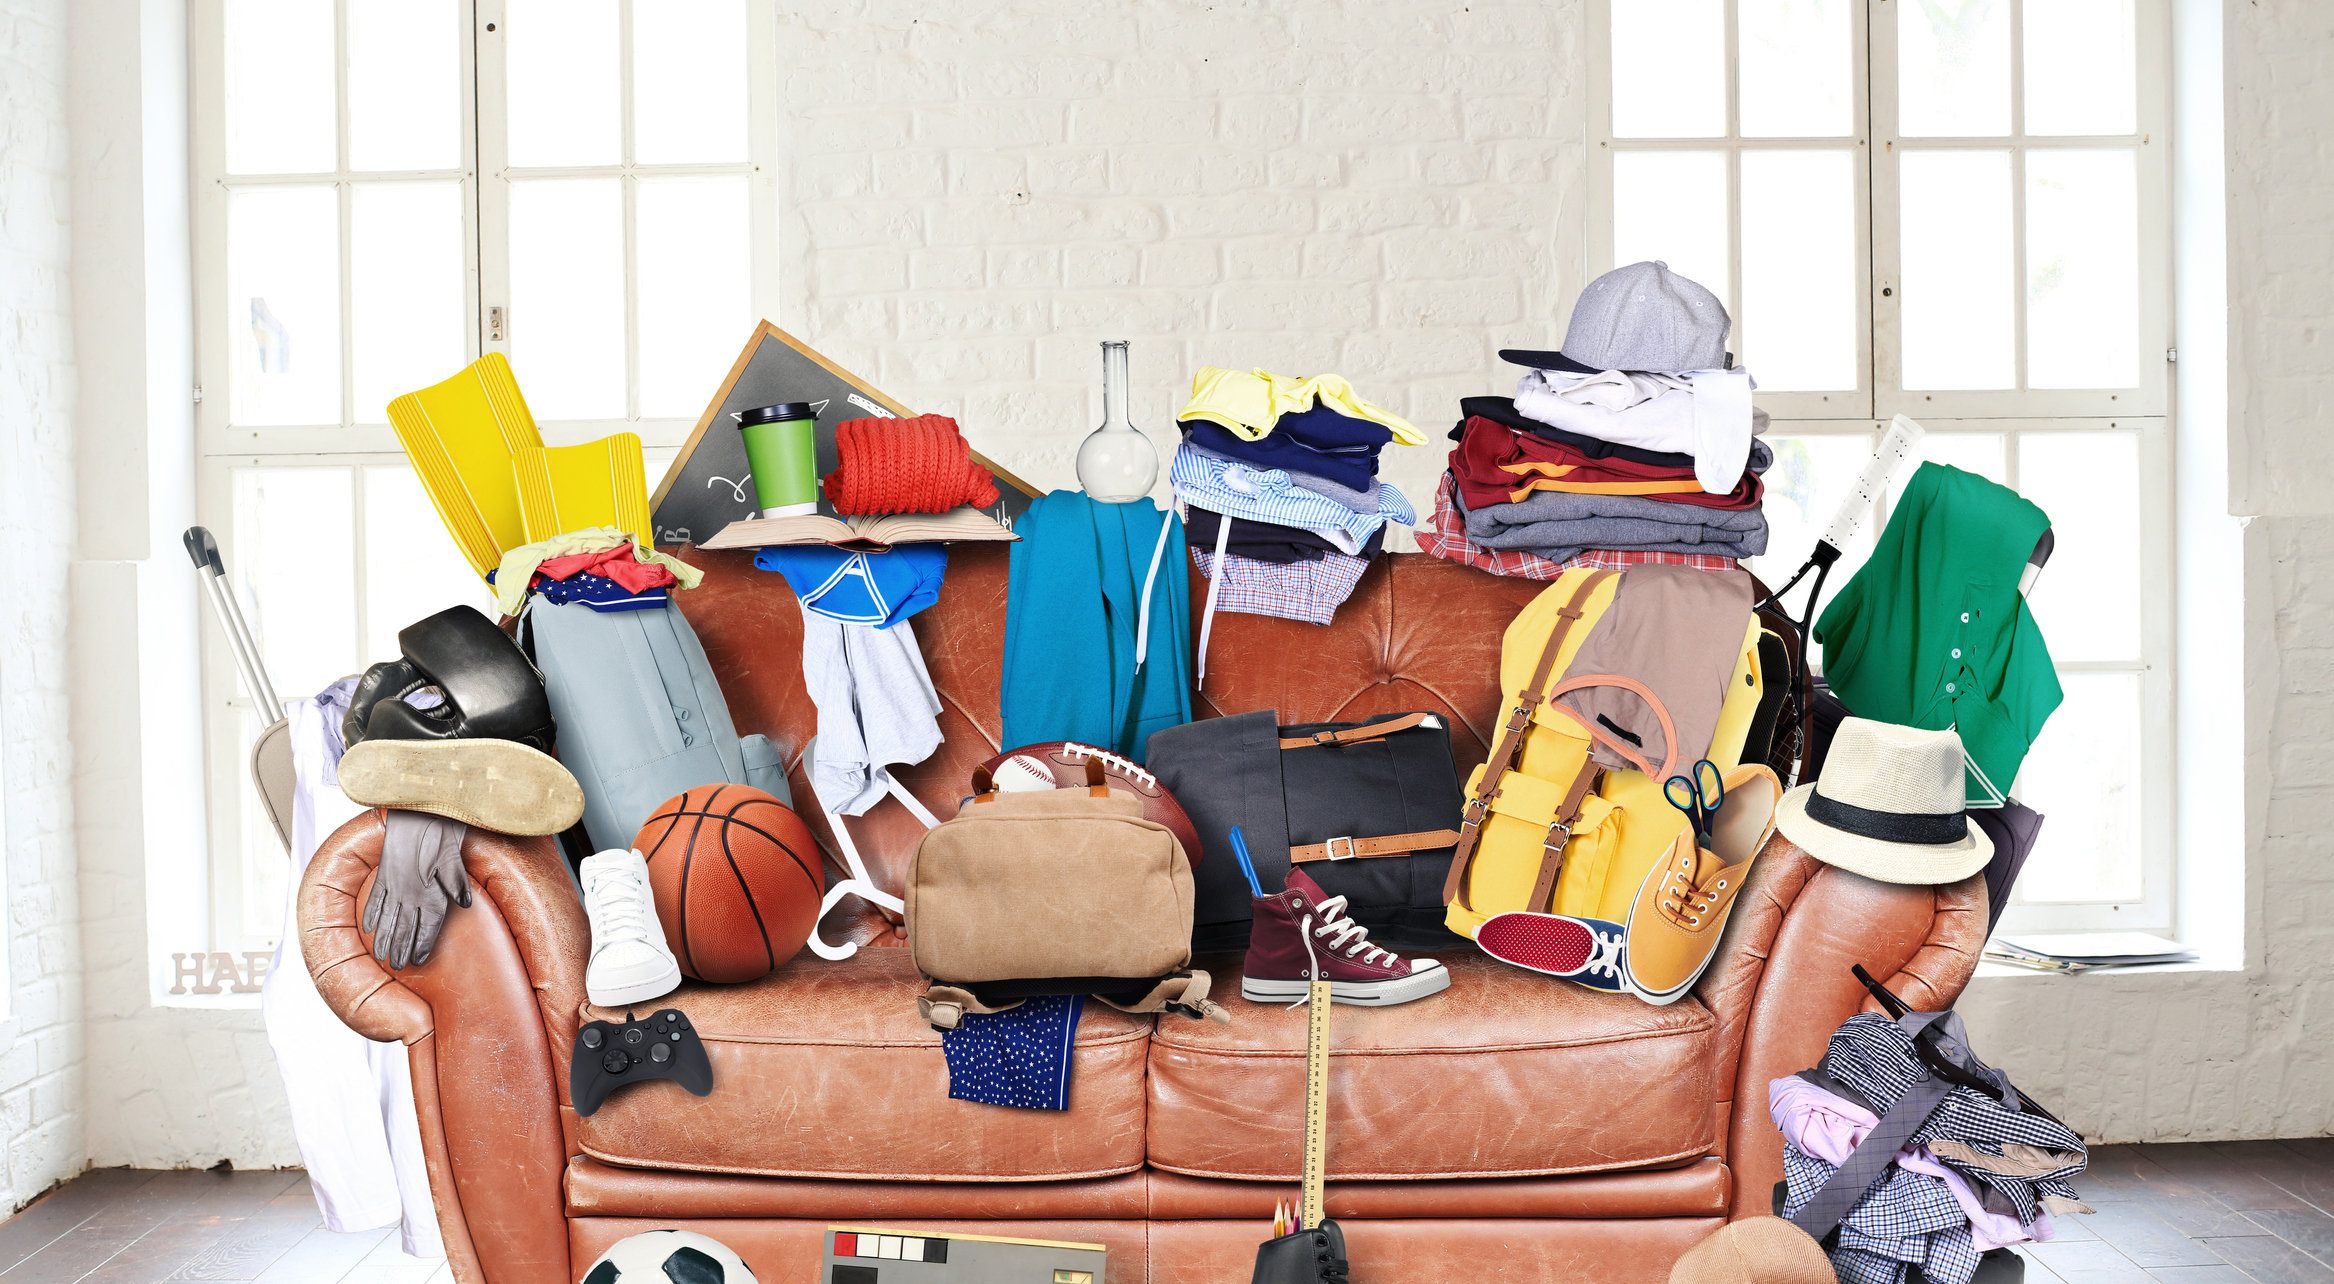 Couch cluttered with household objects